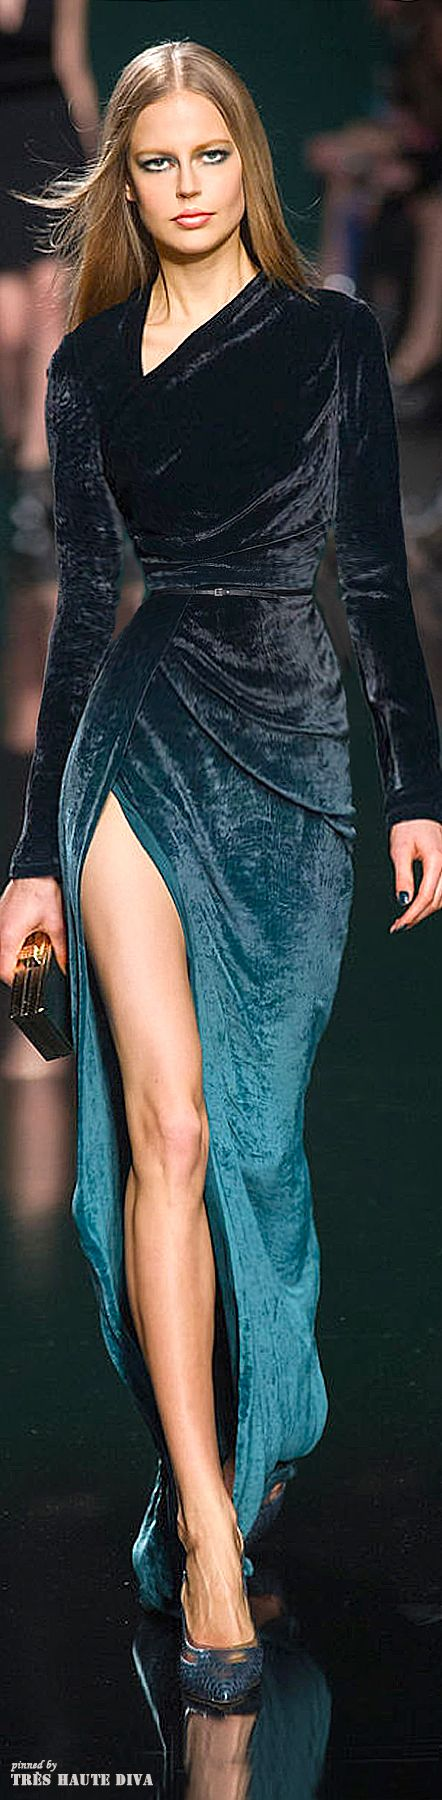 Elie Saab Fall/Winter 2014 RTW - Paris Fashion Week